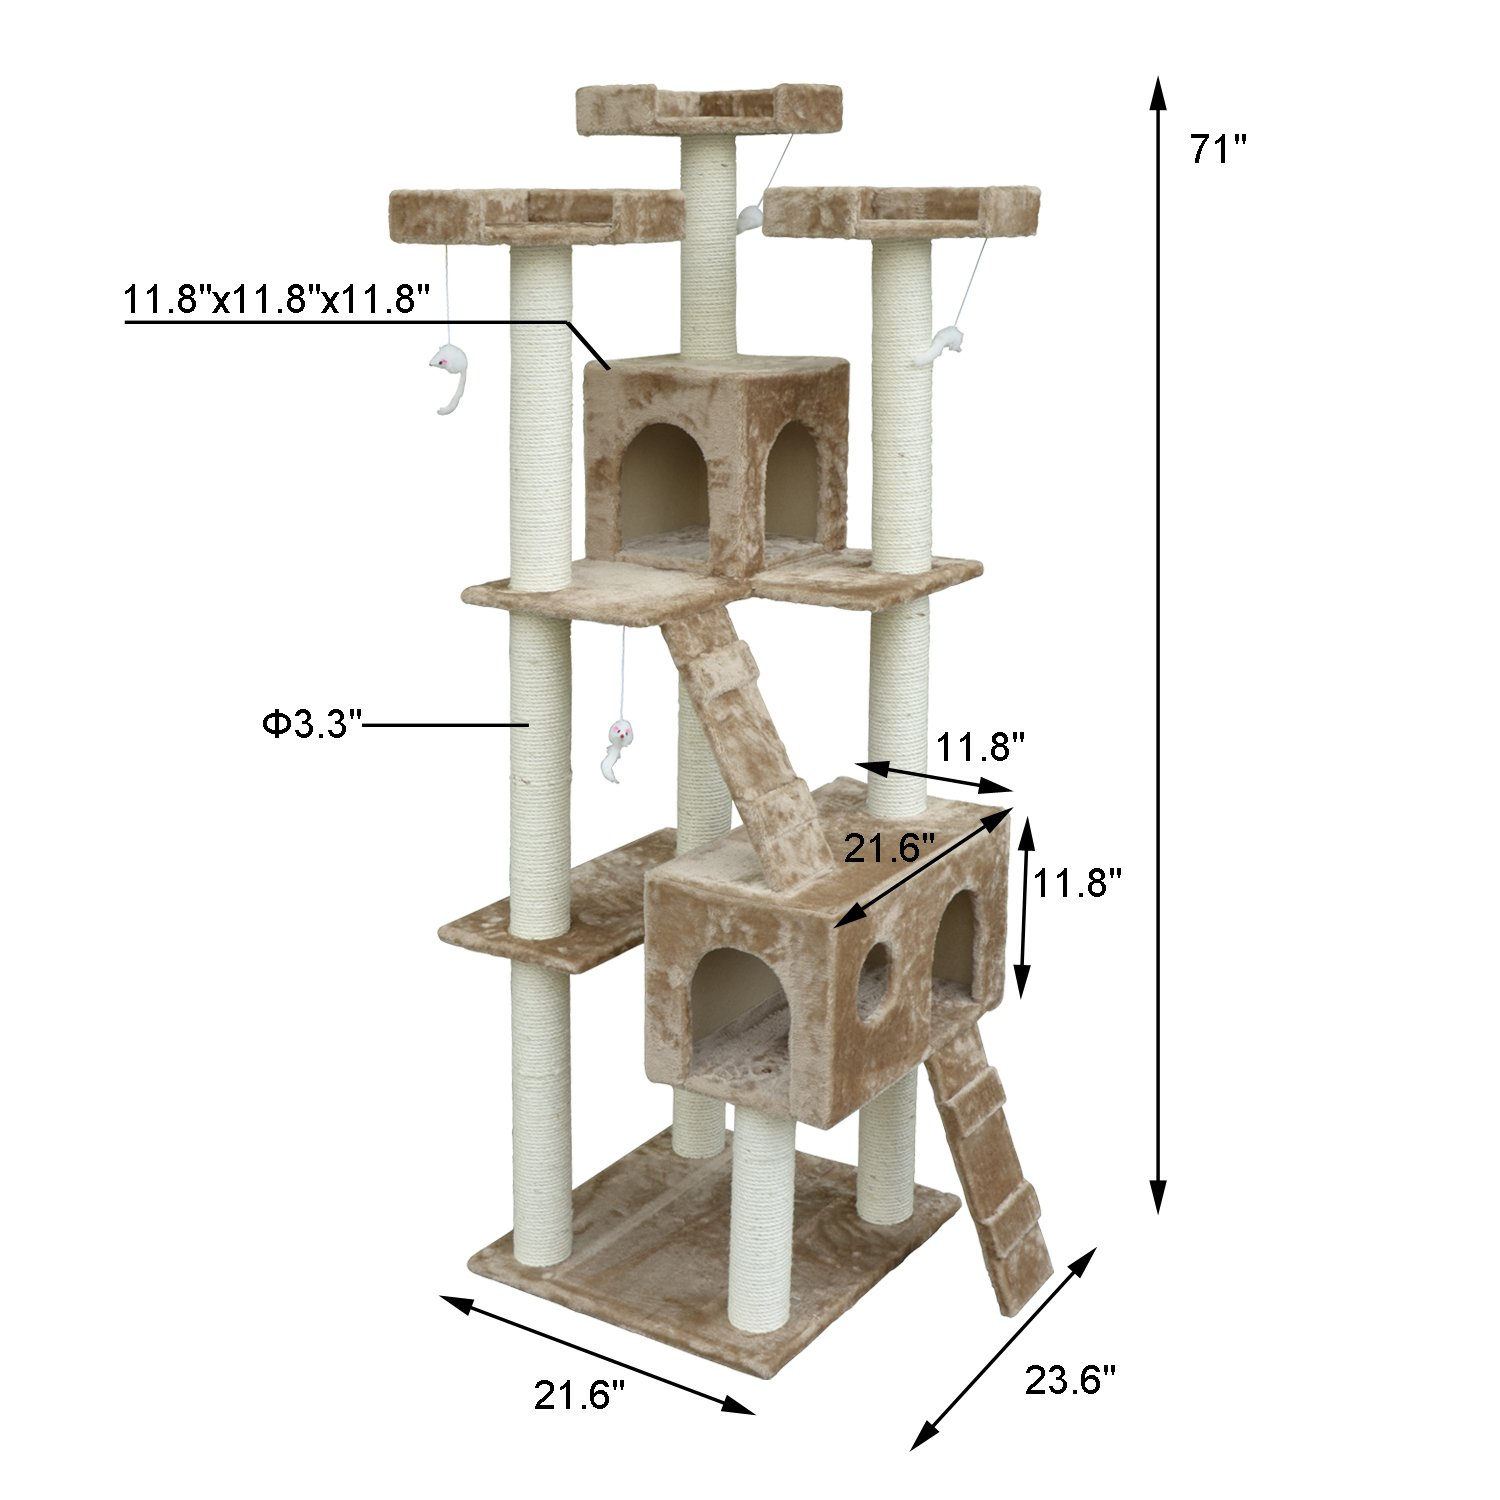 pawhut inch multilevel condo cat tree scratching house amazon  - pawhut inch cat tree furniture pet tower house with scratch post andcondo